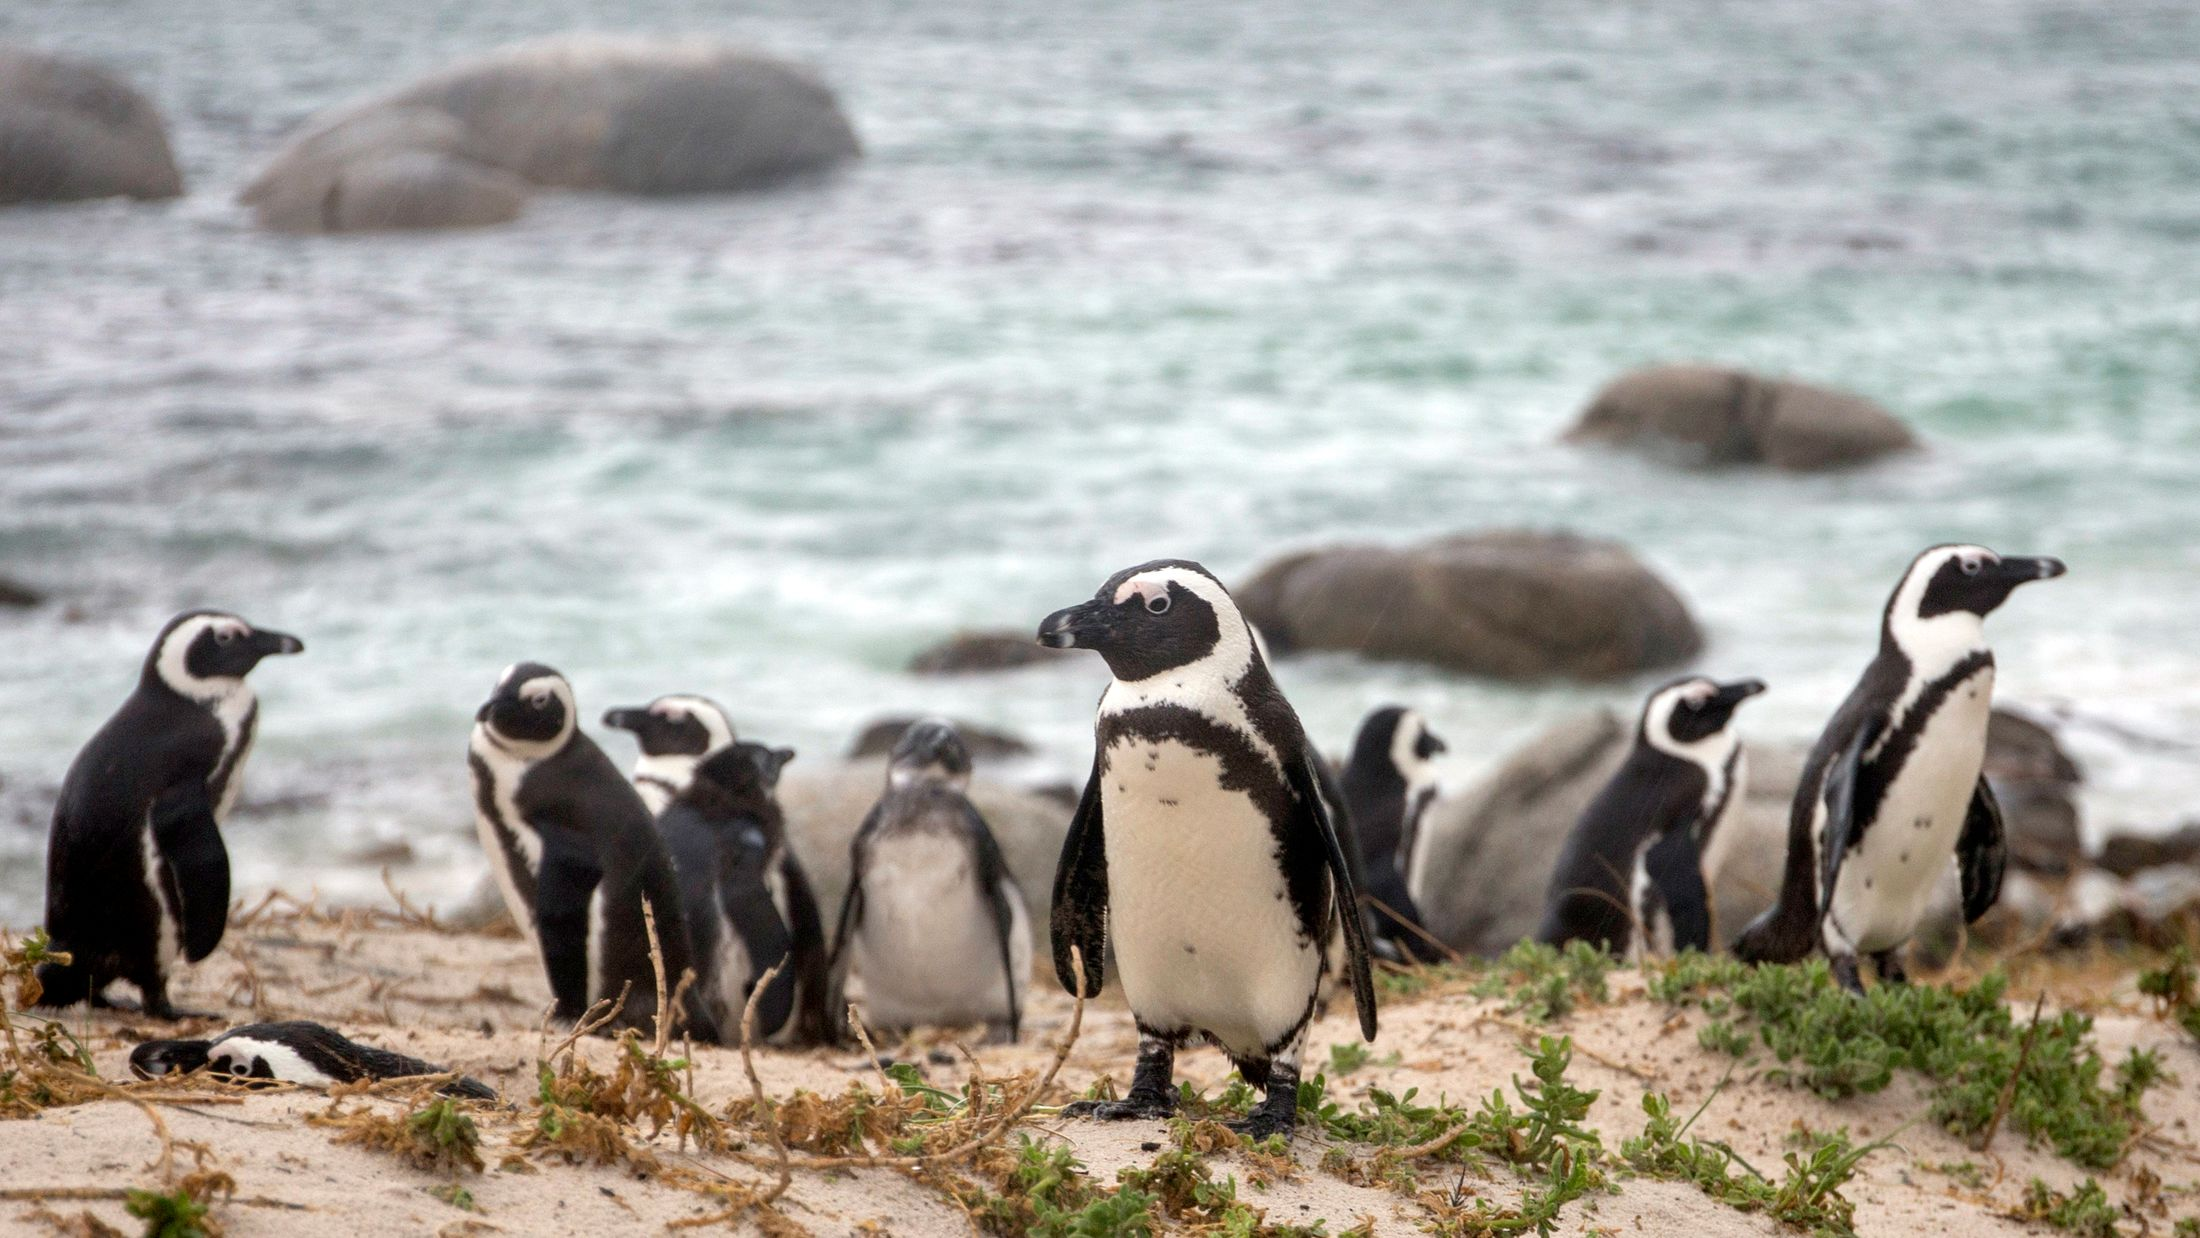 085090_Boulders_Bay_Penguin_Colony_Mlee-South-Africa-2015_028.jpg-Hybris